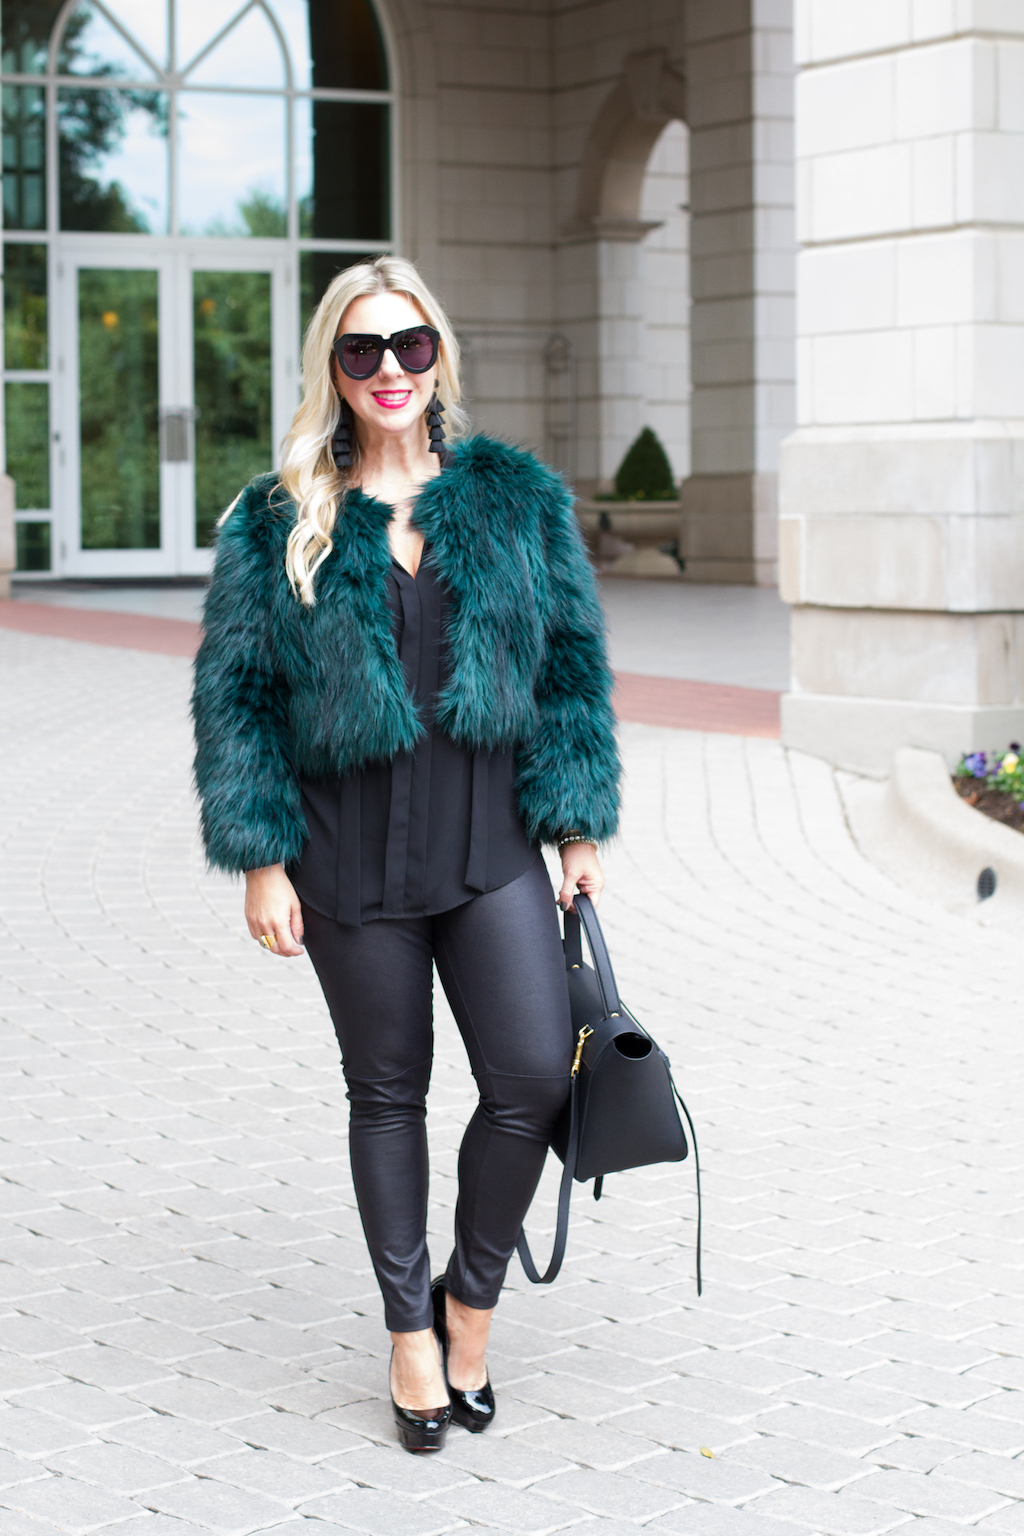 5 Faux Fur Coats For The Winter | The Darling Petite Diva | Winter Coat